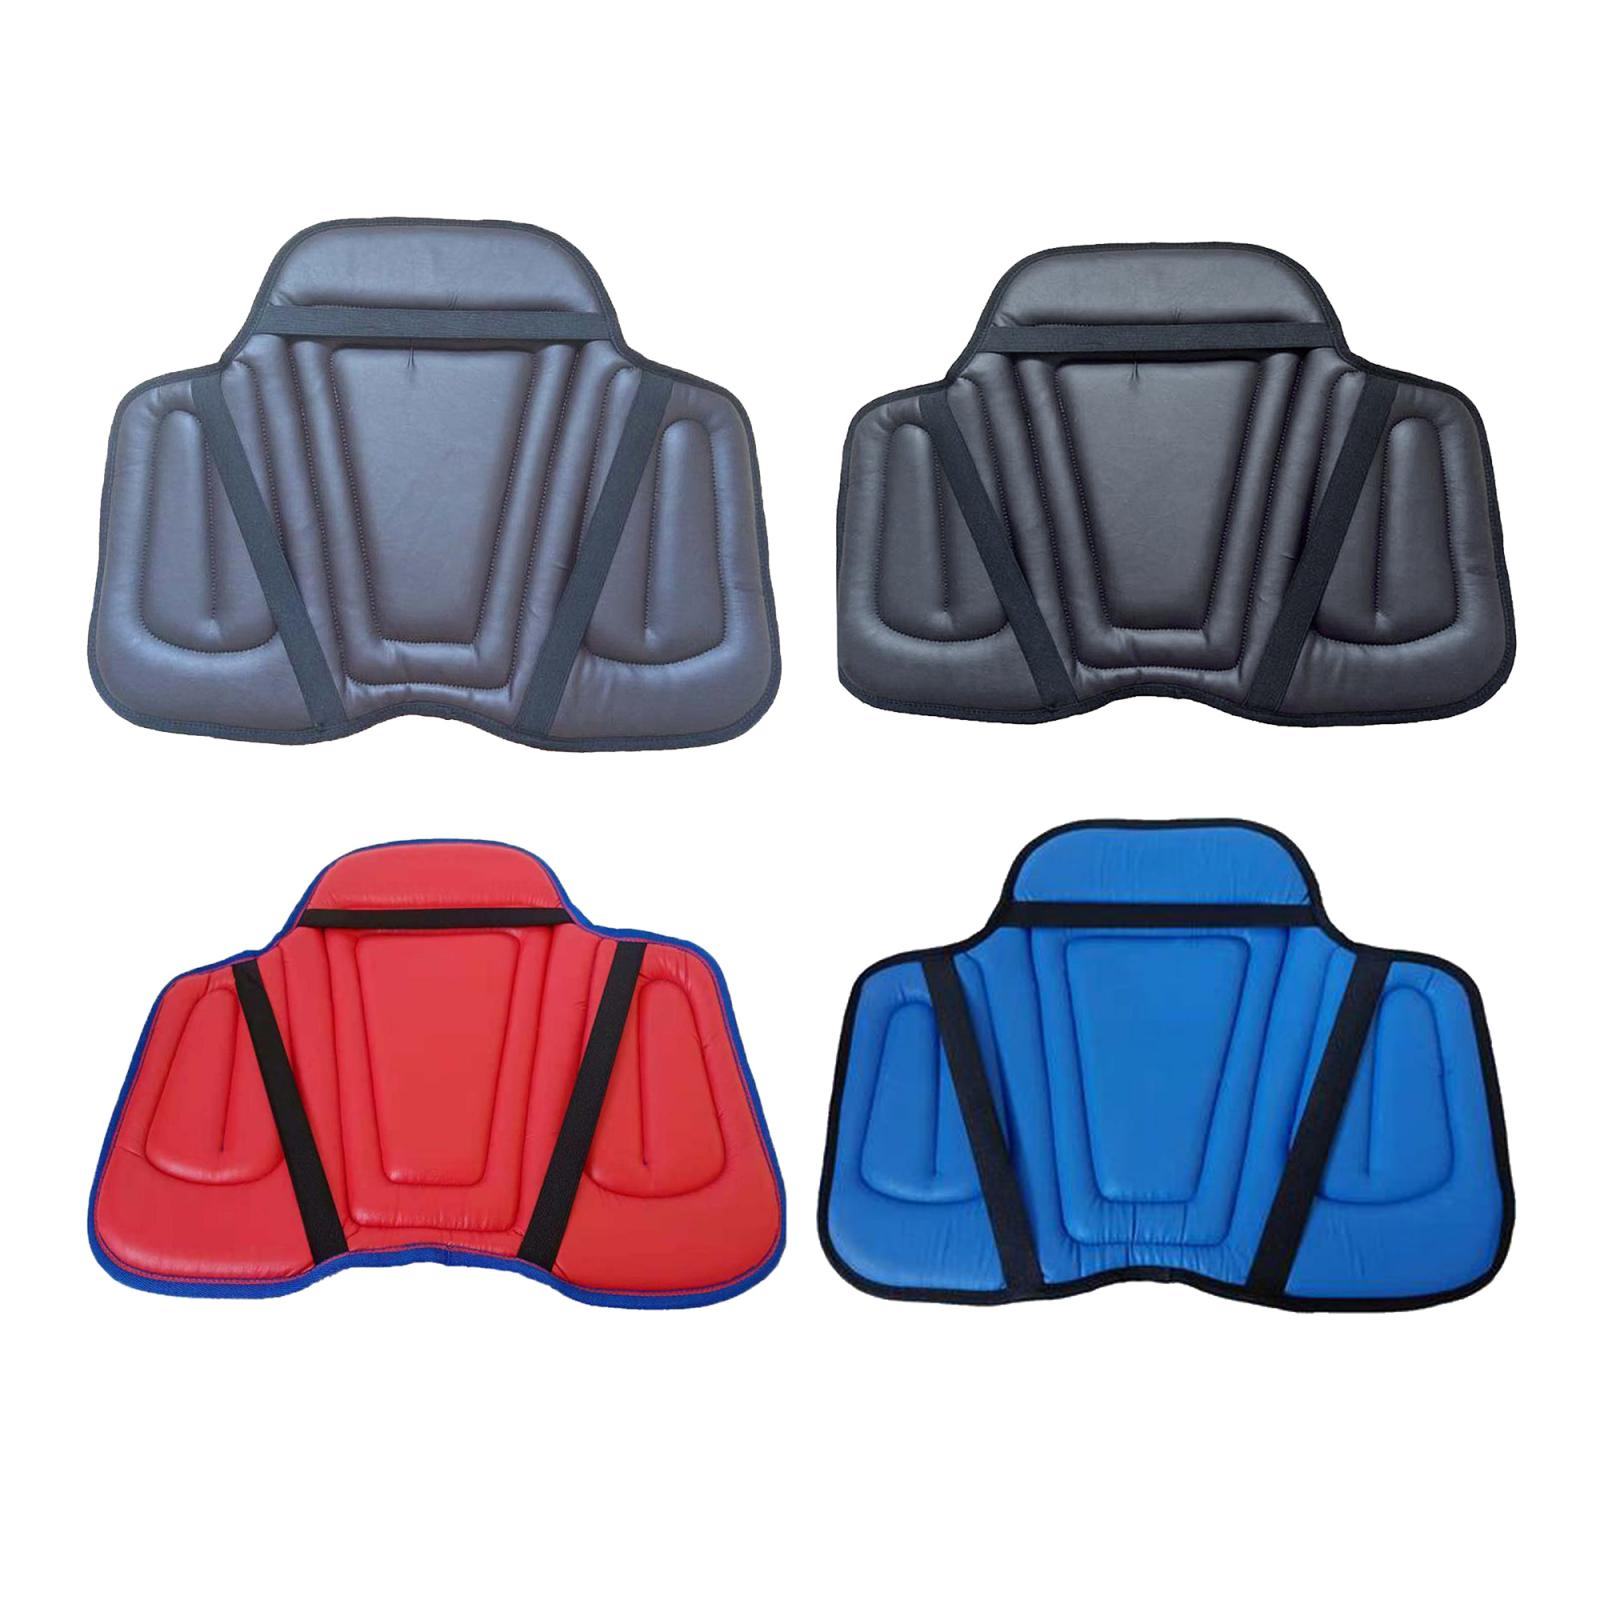 Outdoor PU Saddle Safe Horse Soft Equestrian Seat Pad Horse Riding Pad Outdoor Equestrian Equipment Accessories